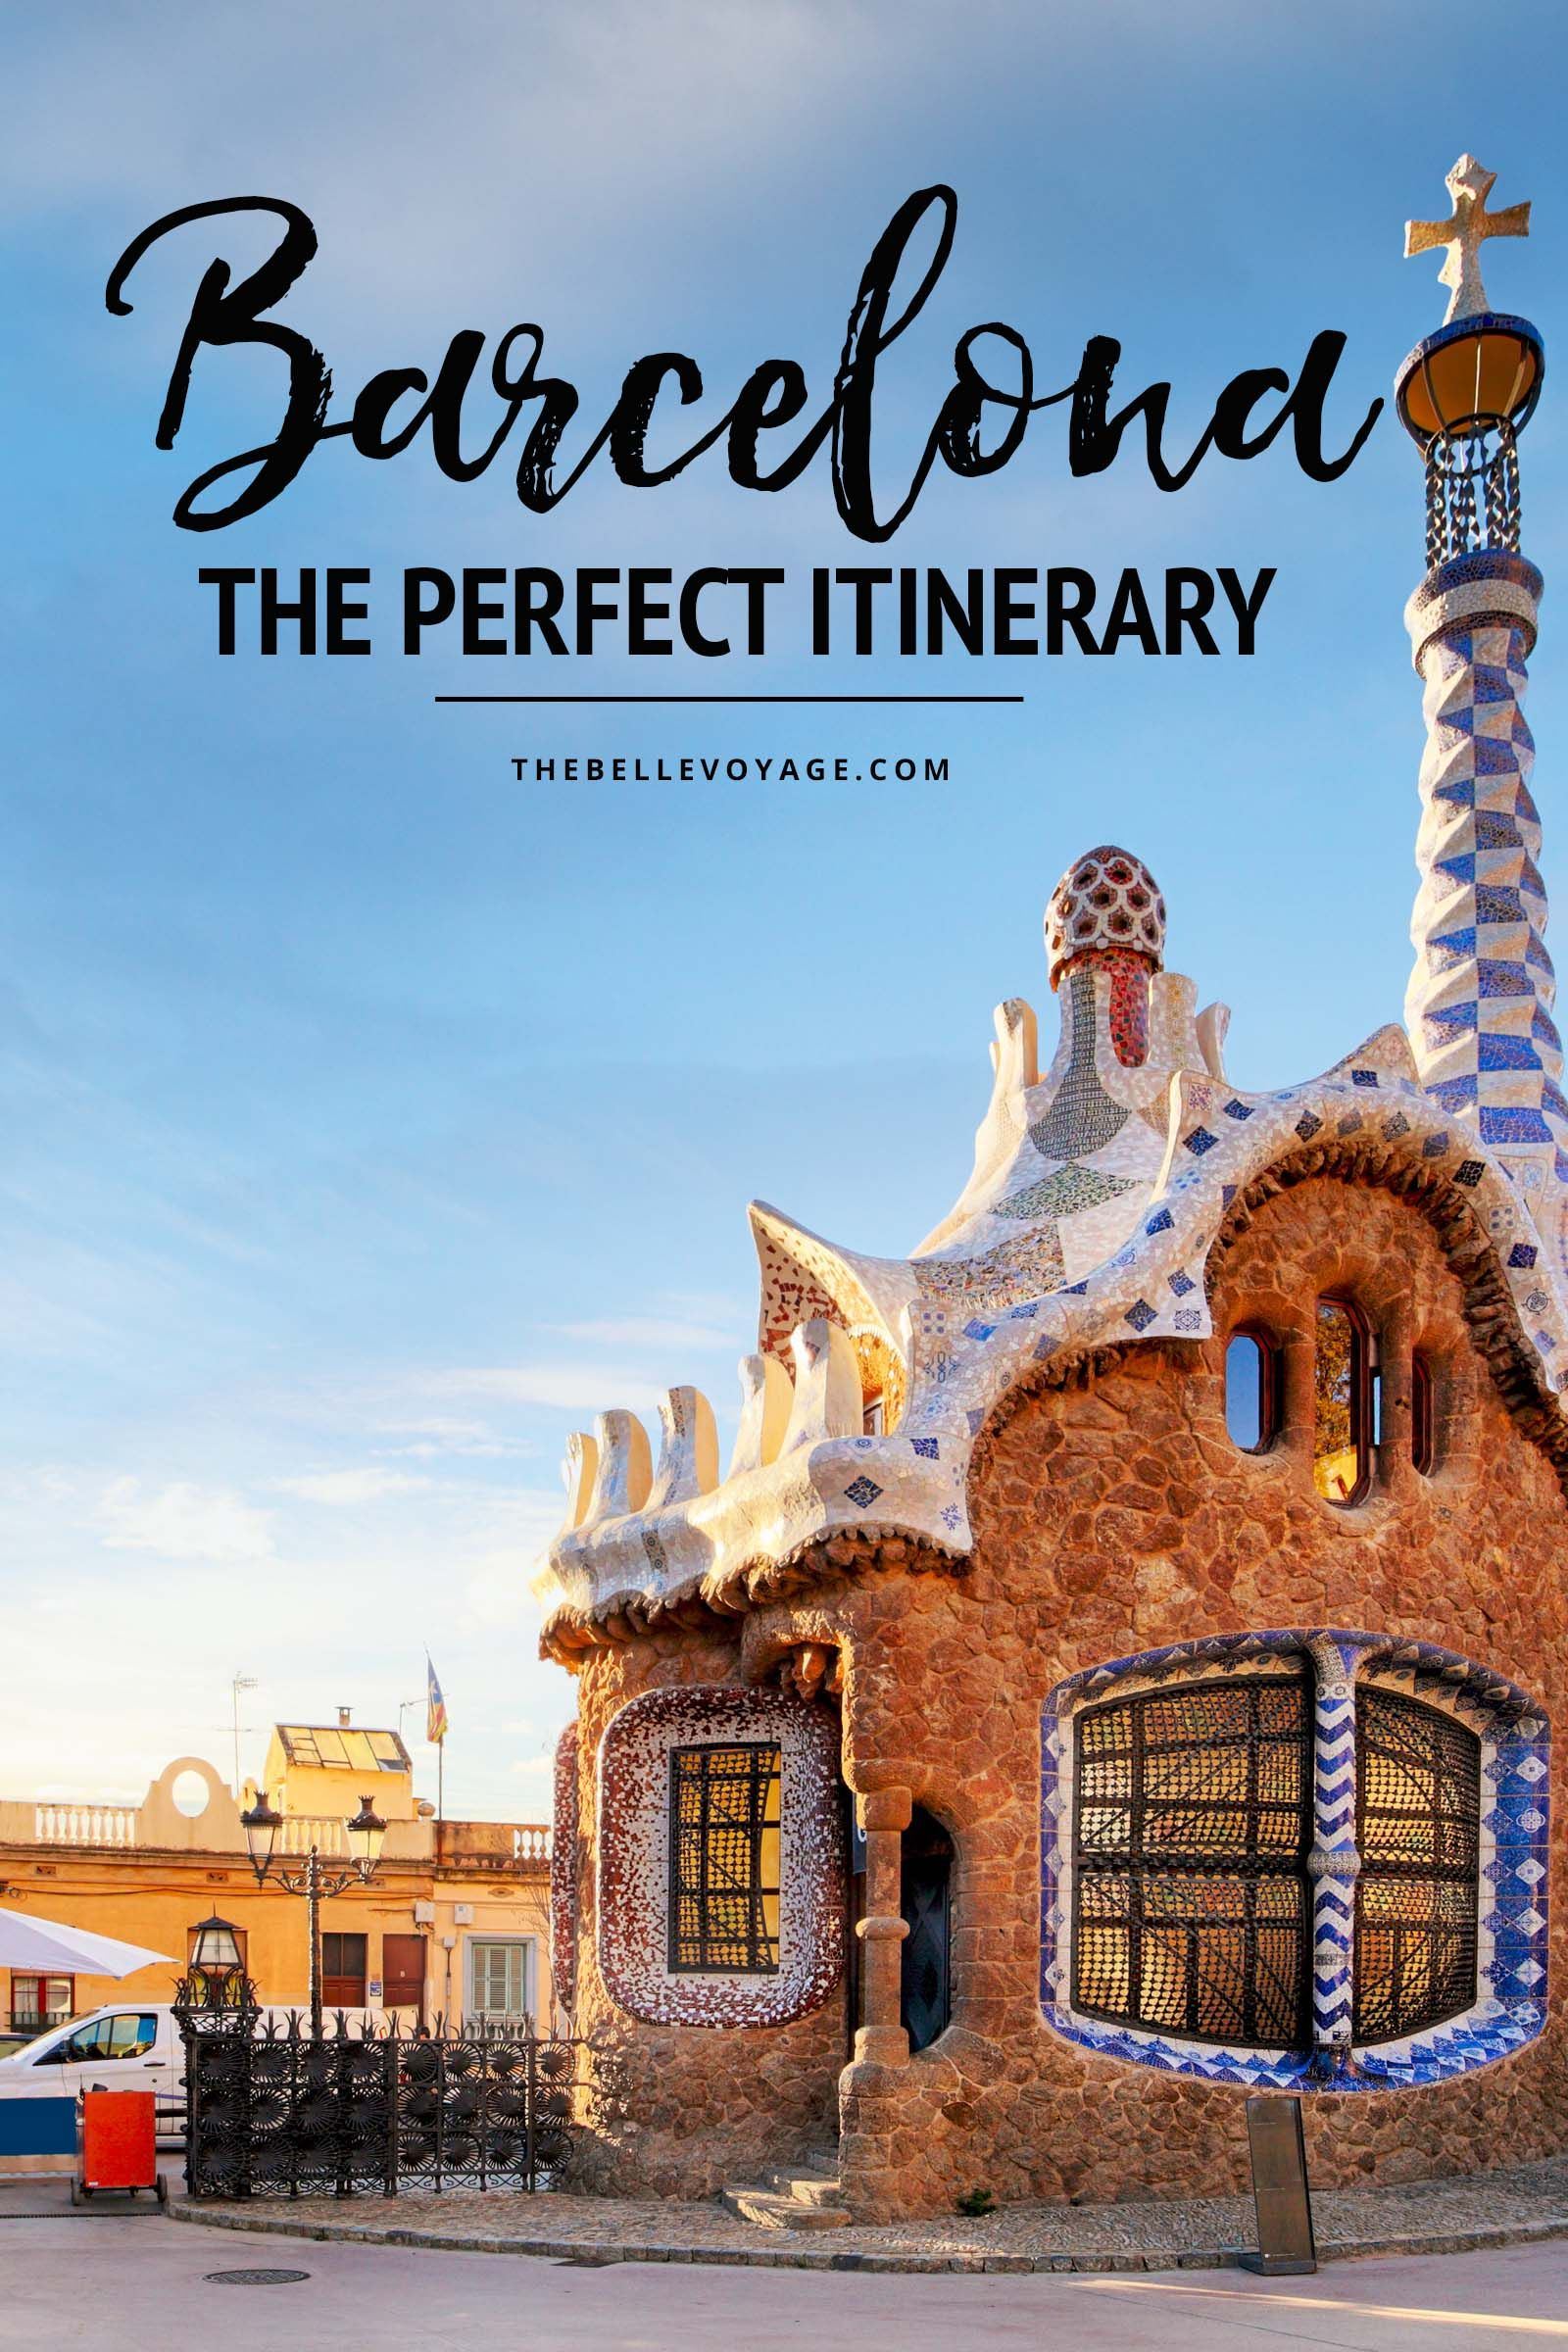 Barcelona Spain The Perfect Itinerary for First Timers